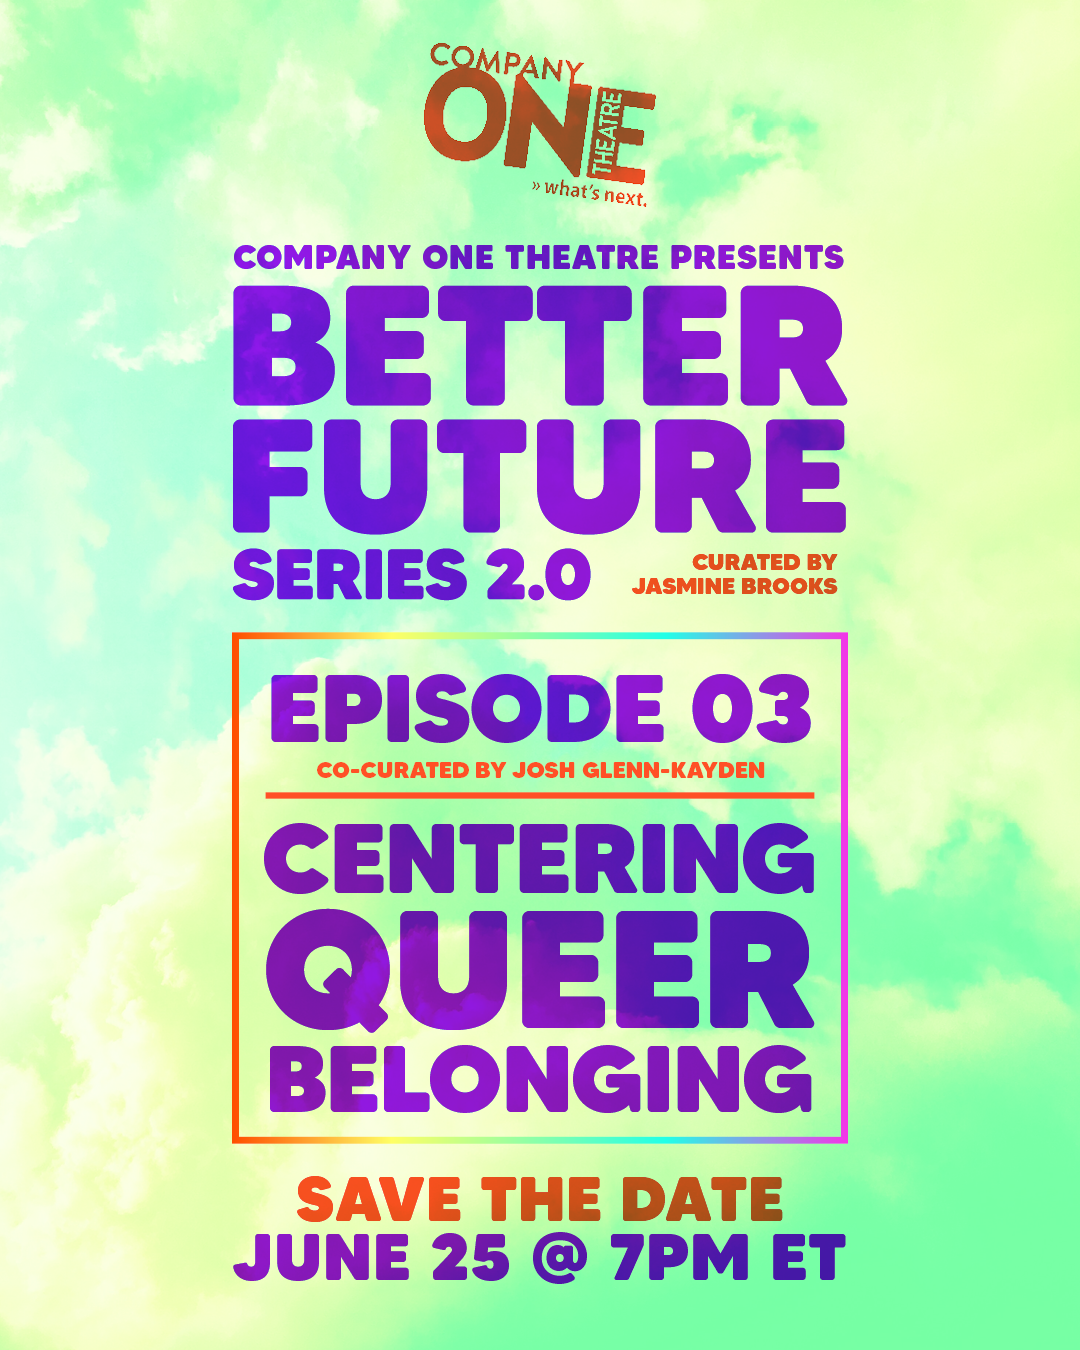 Company One Theatre presents  Better Future Series 2.0  curated by Jasmine Brooks   Episode 03: Centering Queer Belonging co-curated by Josh Glenn Kayden  Save the Date: June 25 @ 7pm EST